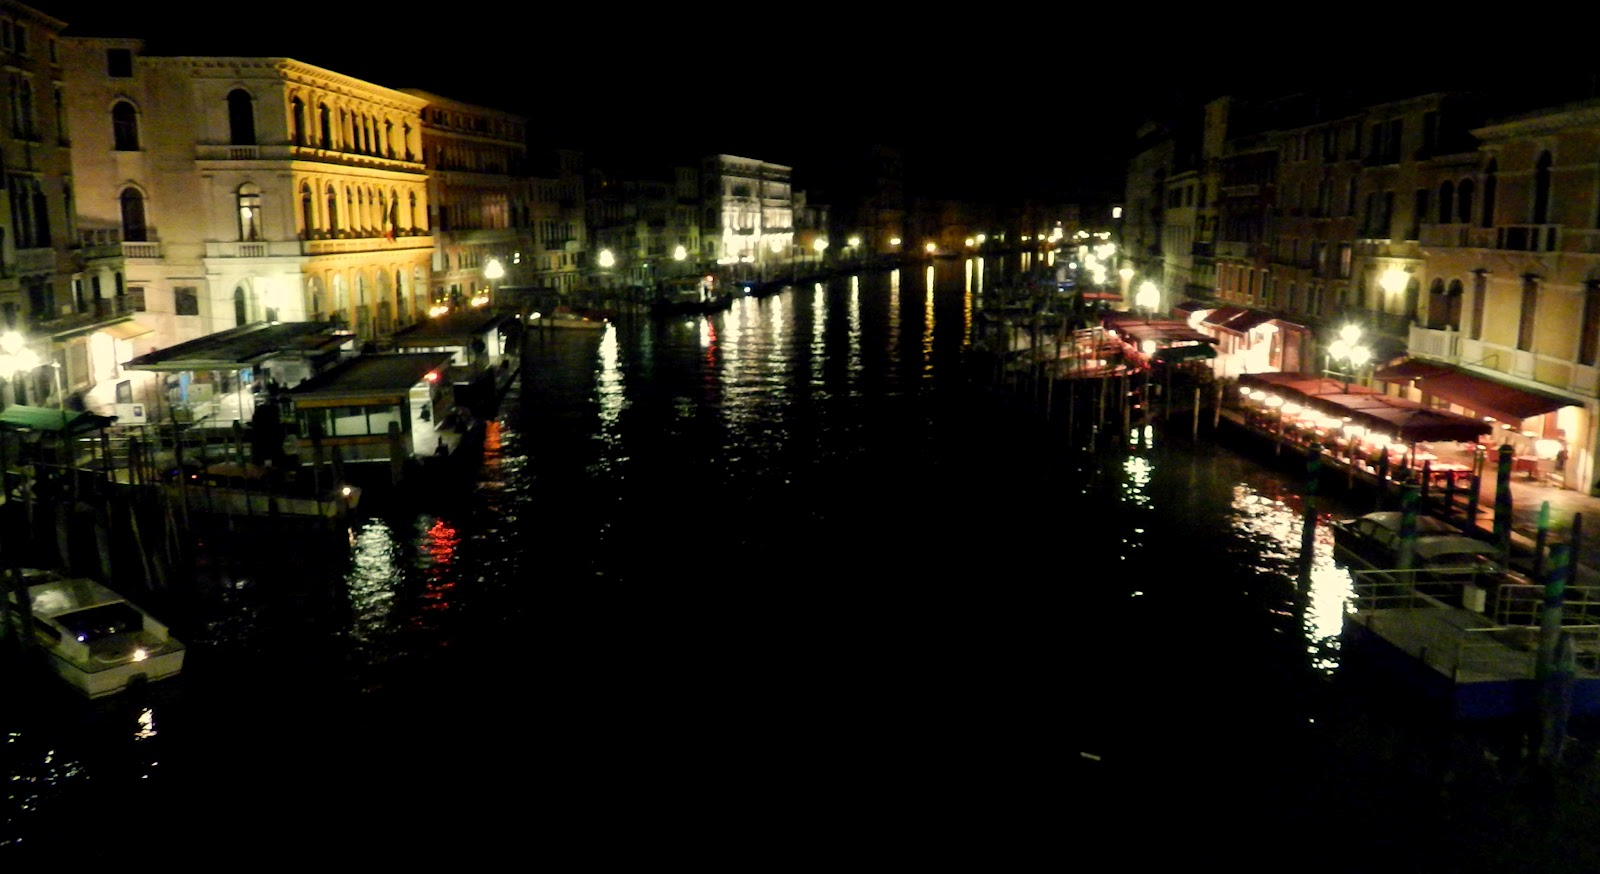 A Very Full Day in Venice, Part 2: Bar Crawling